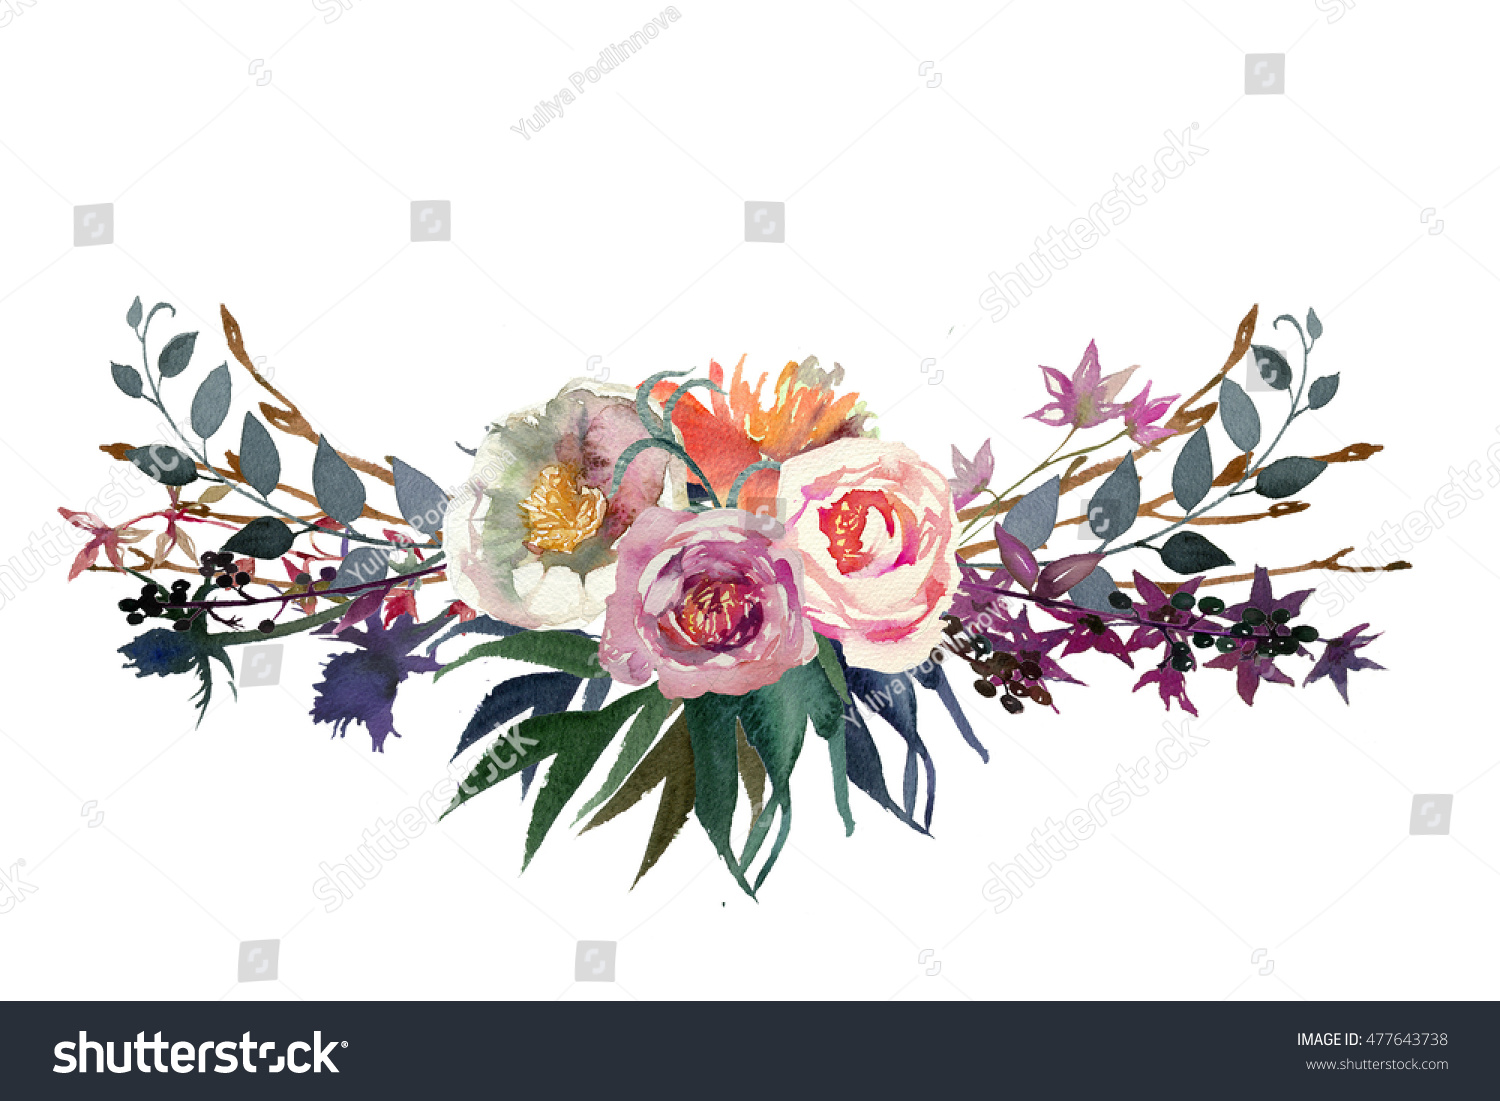 Watercolor Flowers Leaves Floral Bouquet Pink Stock Illustration ...